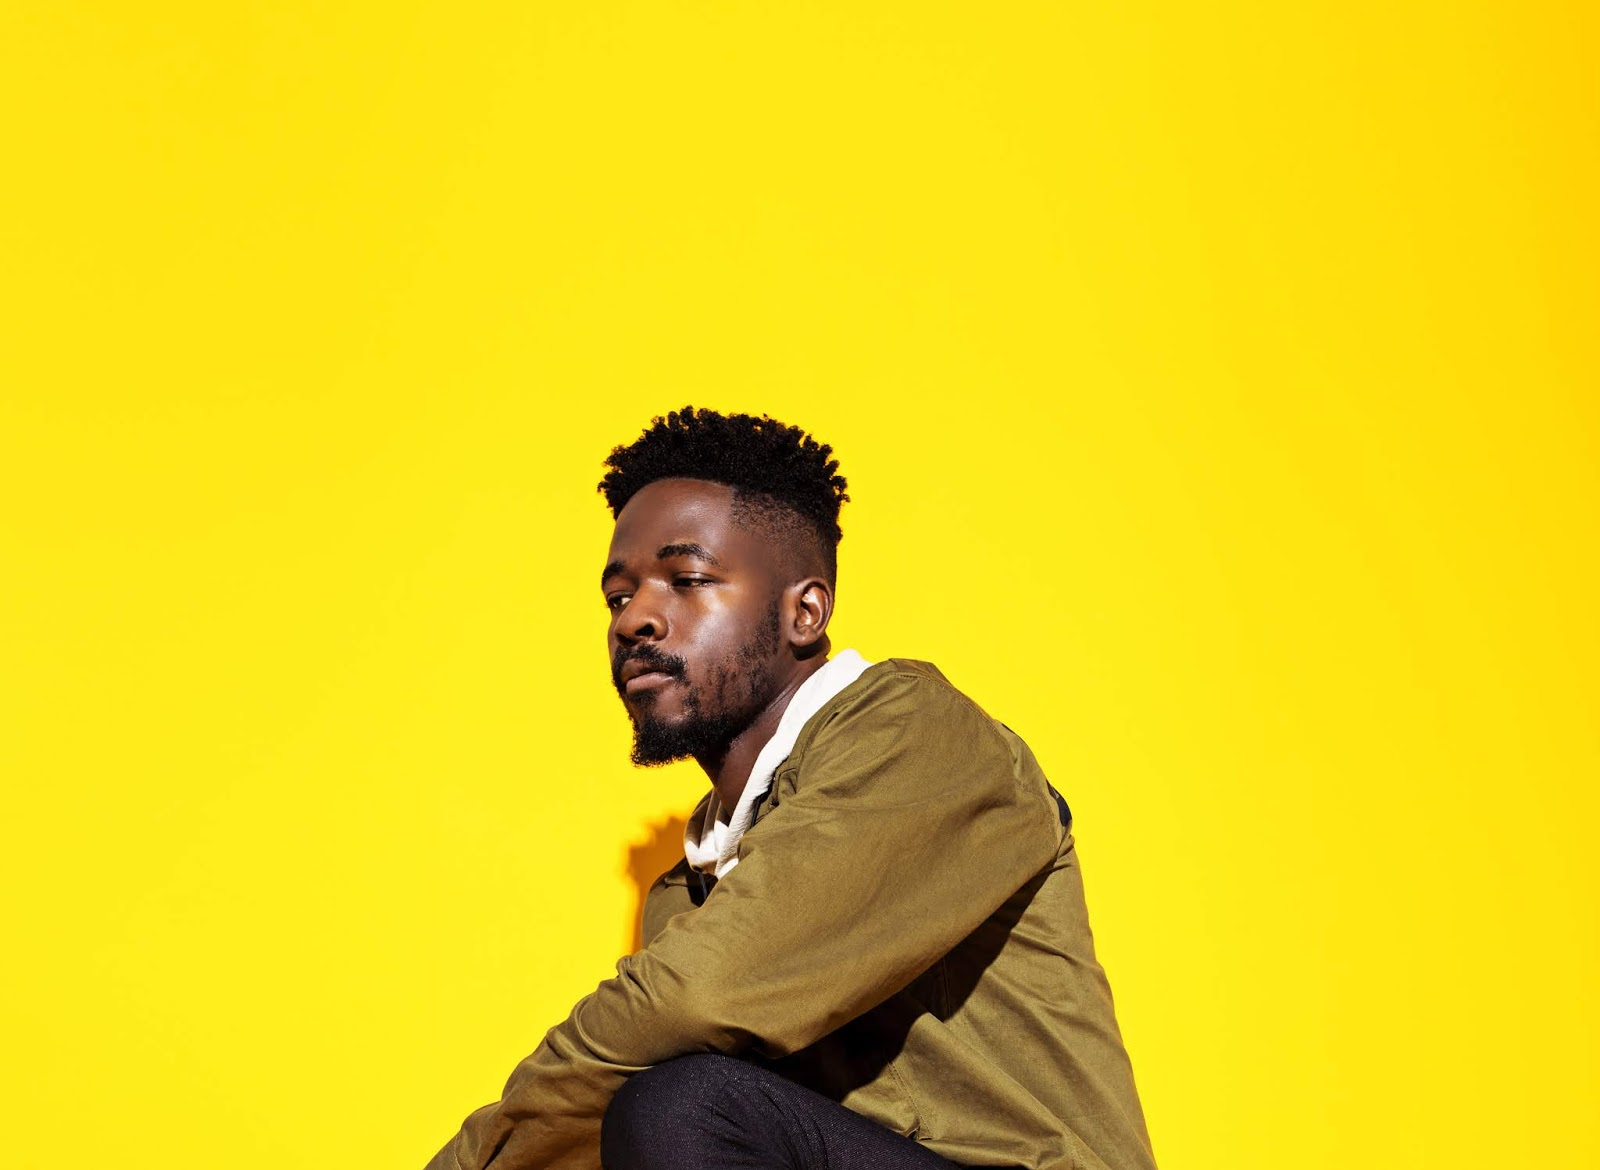 Johnny Drille: Project Fame to 10 million streams with Mavin Records